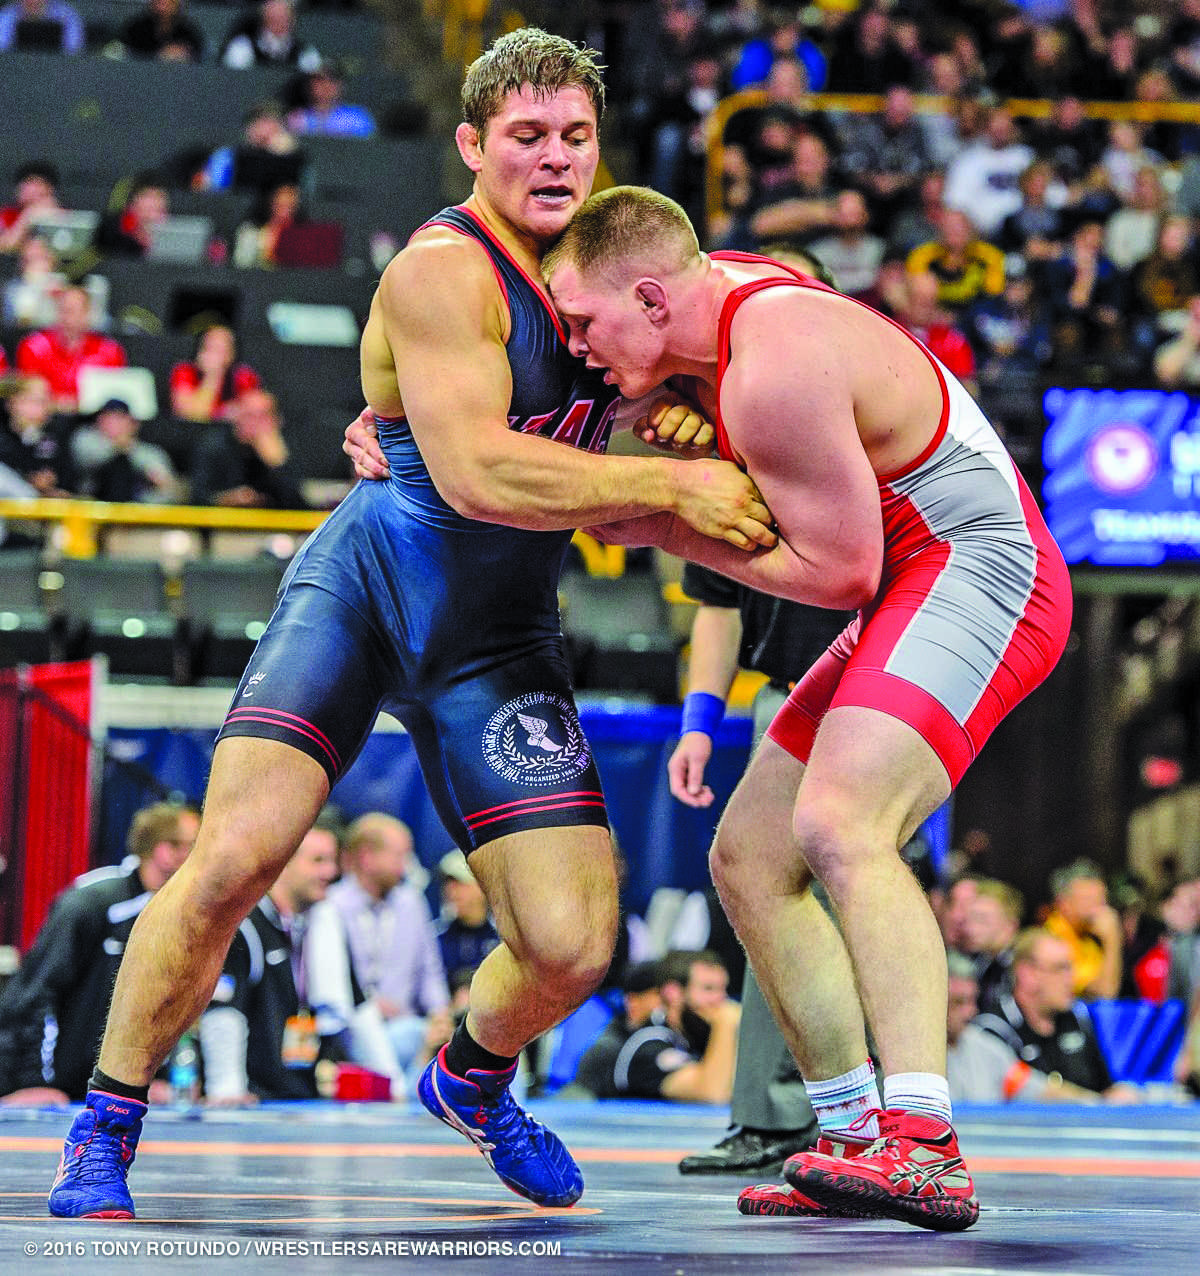 Orry Elor, left, competes in a semifinals match at the 2016 Olympic trials. (Photo courtesy of Tony Rotundo)